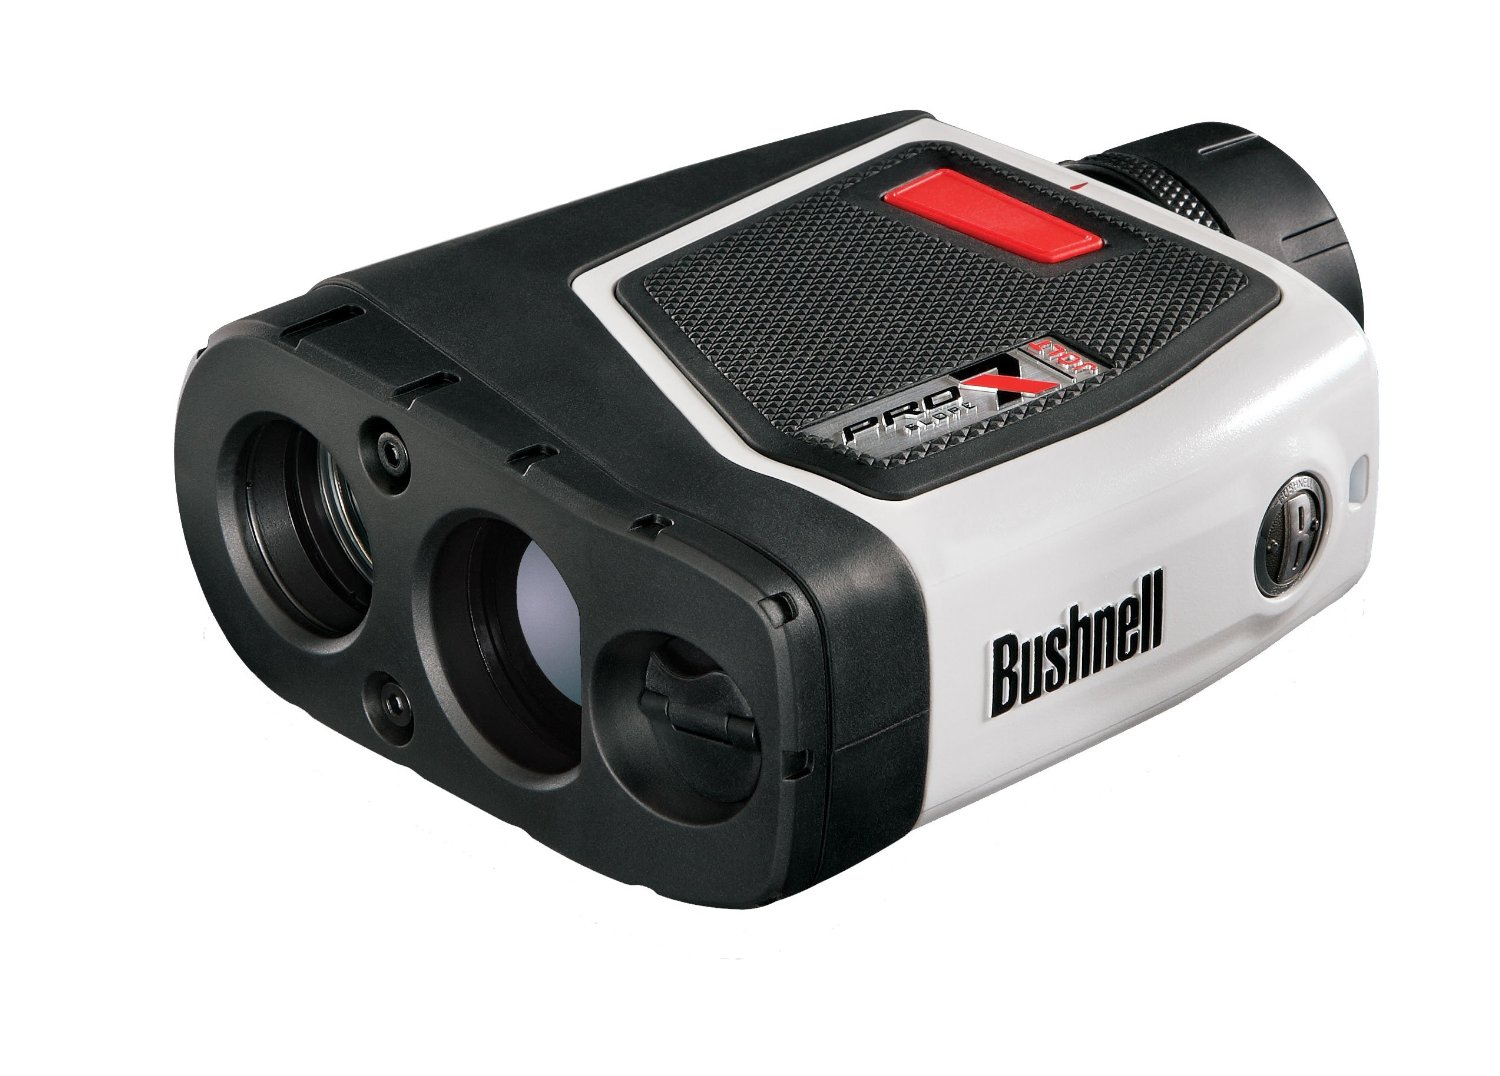 Bushnell Pro X7 reviews